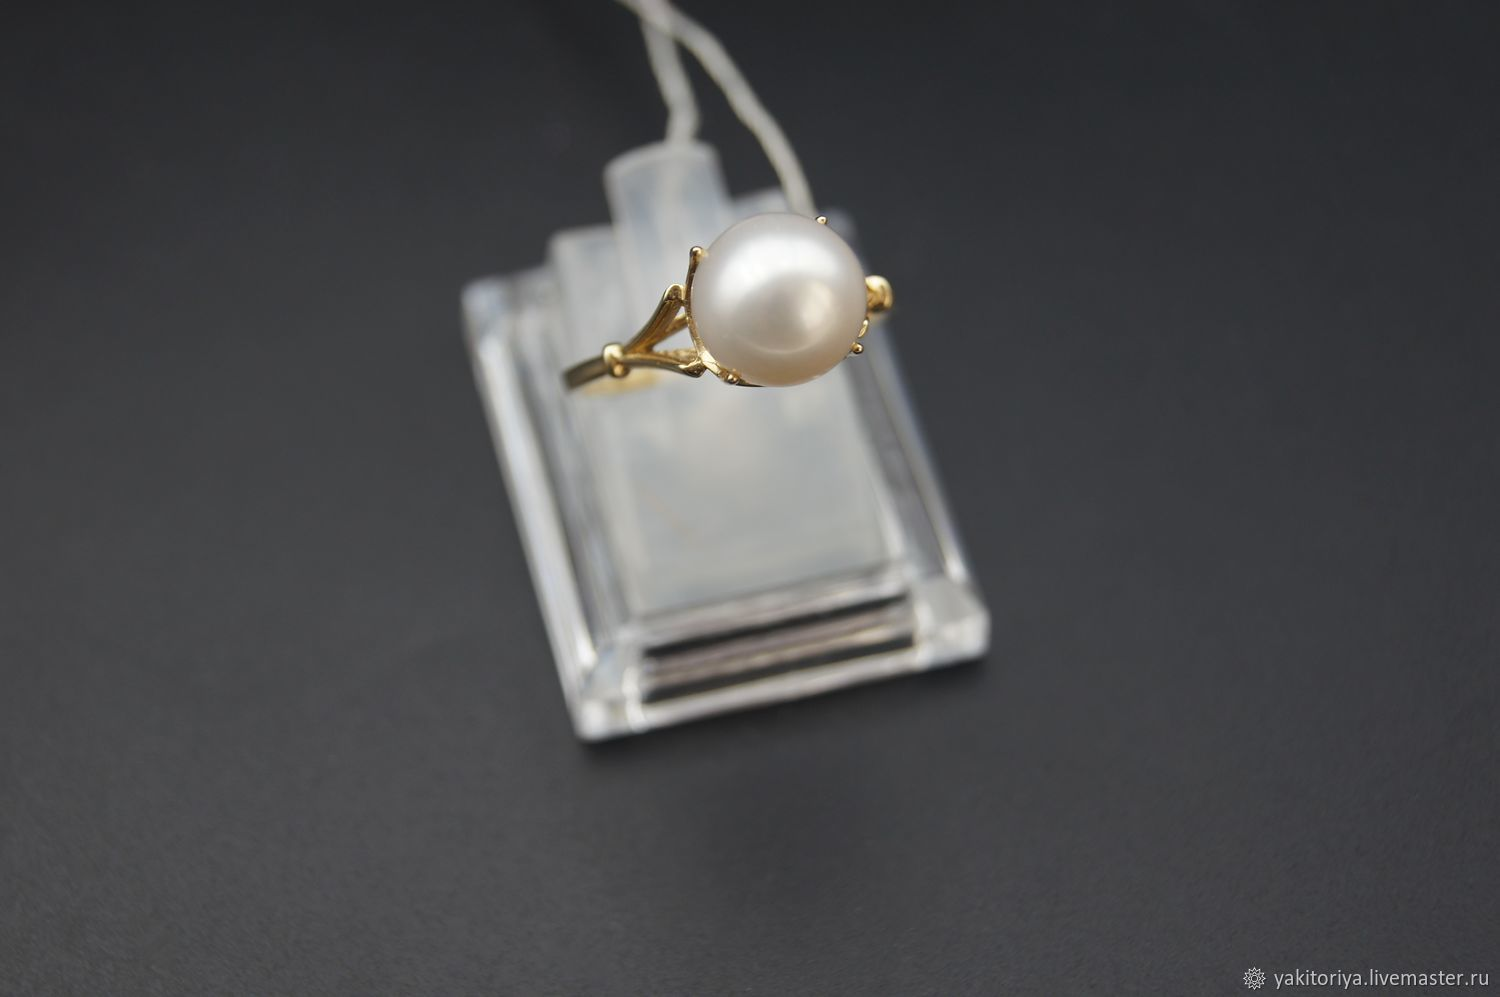 585 gold ring with natural pearls, Rings, Moscow,  Фото №1